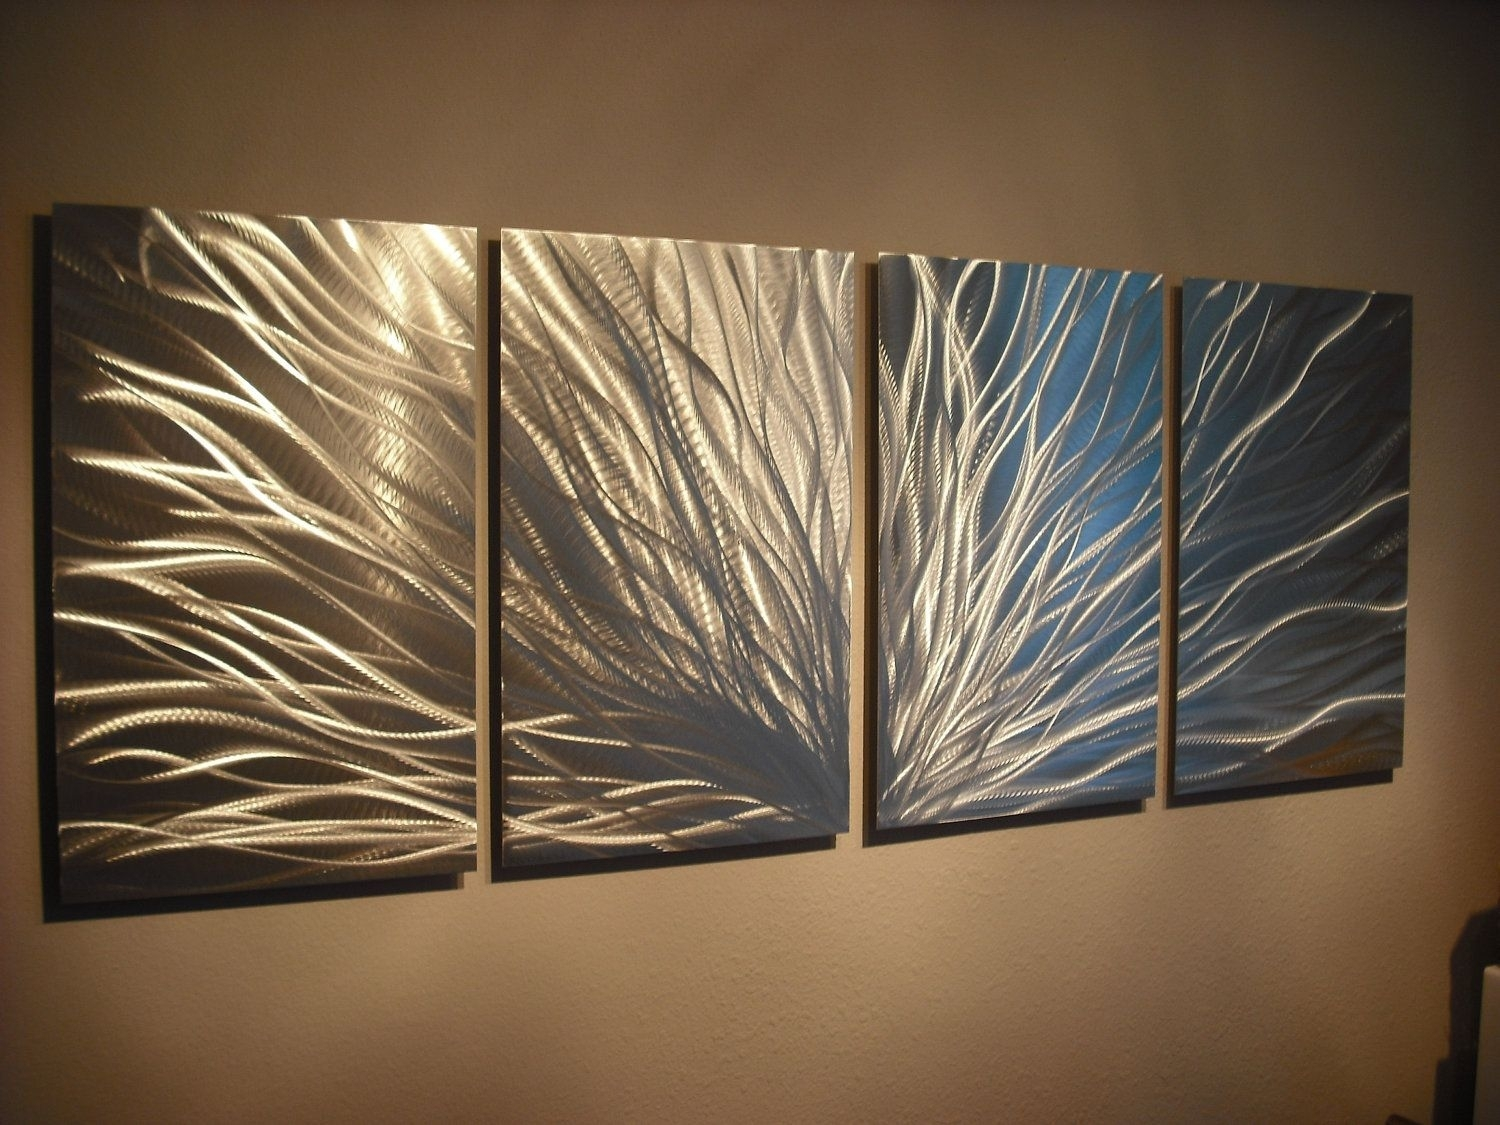 Metal Wall Art Decor Abstract Aluminum Contemporary Modern Sculpture in Contemporary Wall Art Decors (Image 8 of 20)